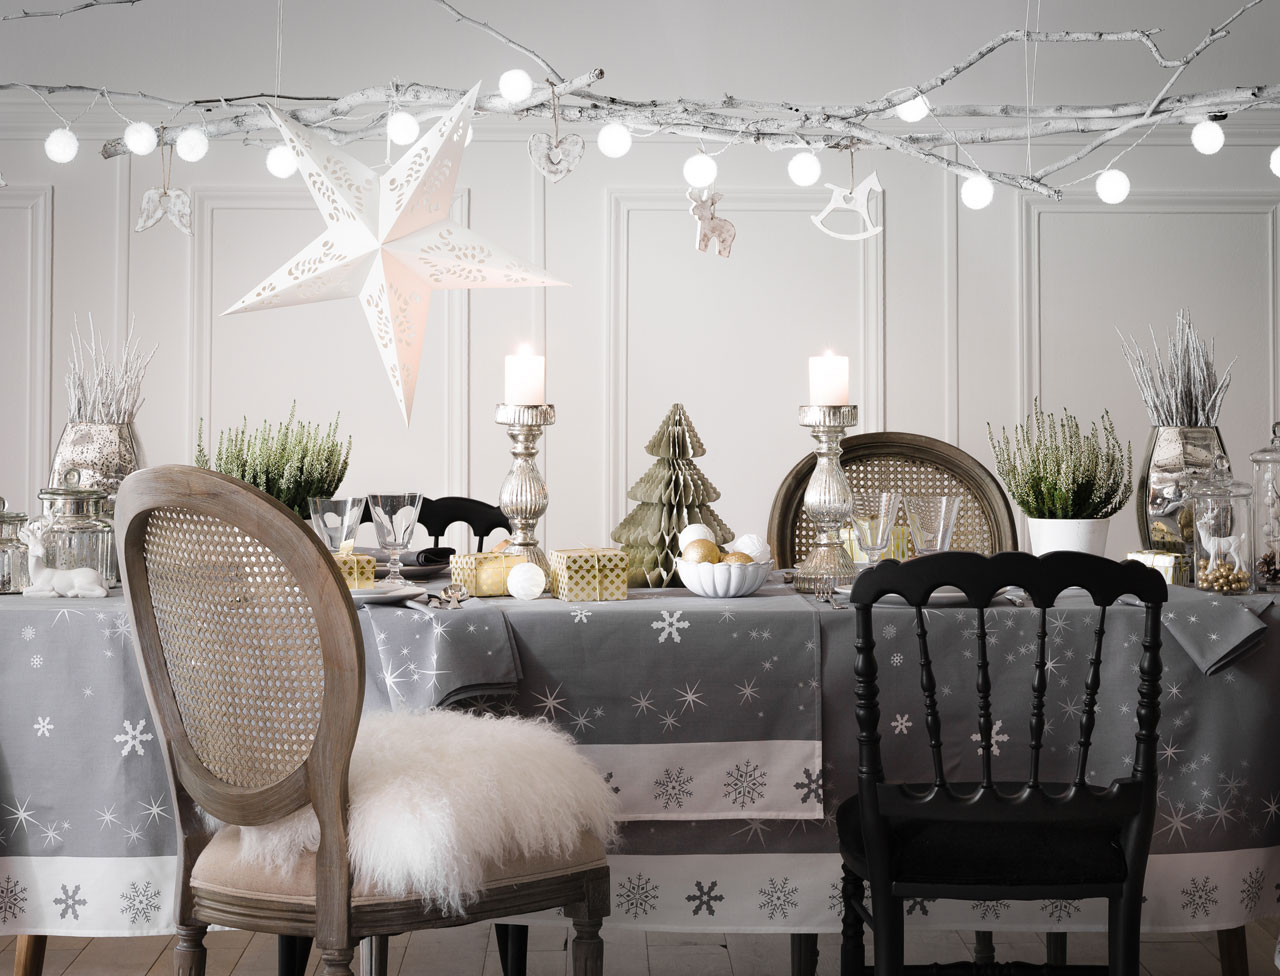 Decoration de noel interieur maison design for Deco interieur 2015